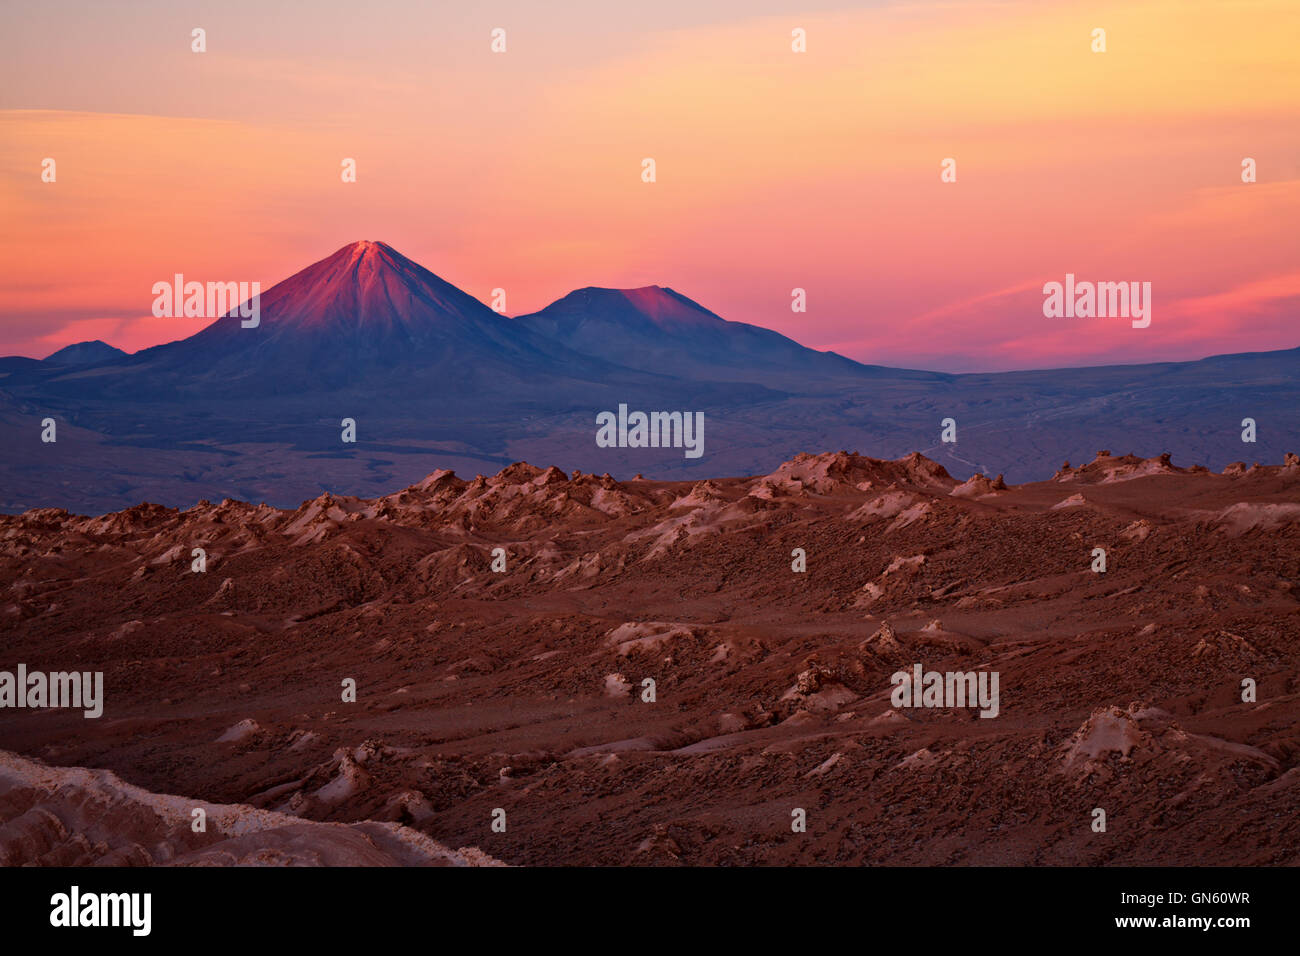 sunset over volcanoes Licancabur and Juriques, Chile - Stock Image